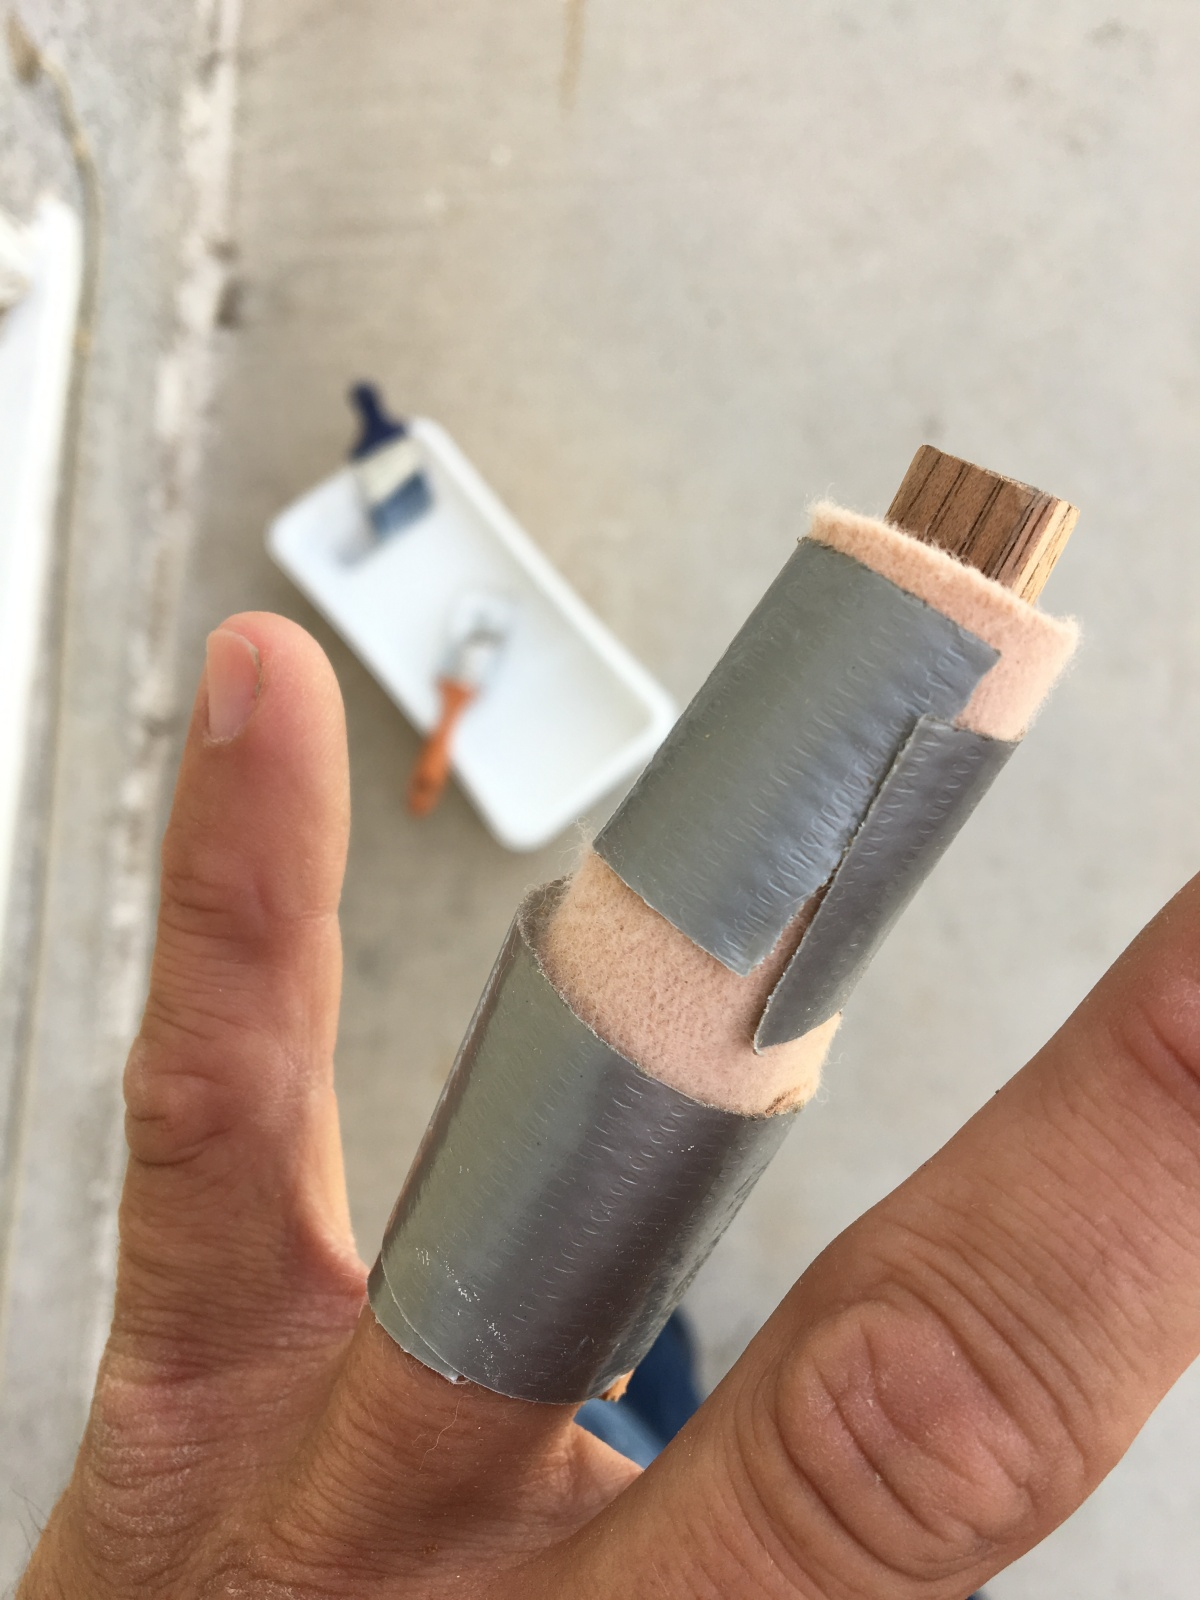 Even a broken finger can be inspiration – a chance to take the power out ofpain.